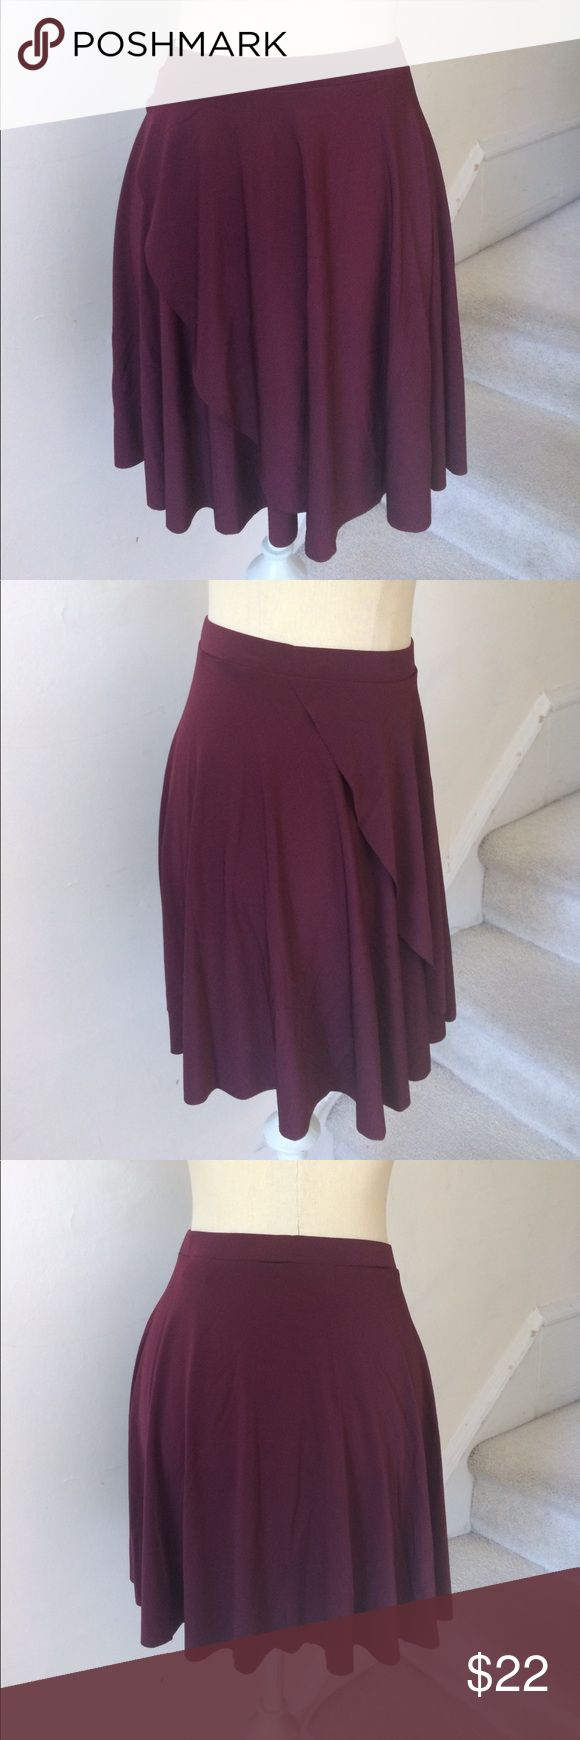 """Urban Outfitters Ballet Faux Wrap Mini Skirt Adorable faux wrap style skirt from Kimchi Blue (Urban Outfitters) 